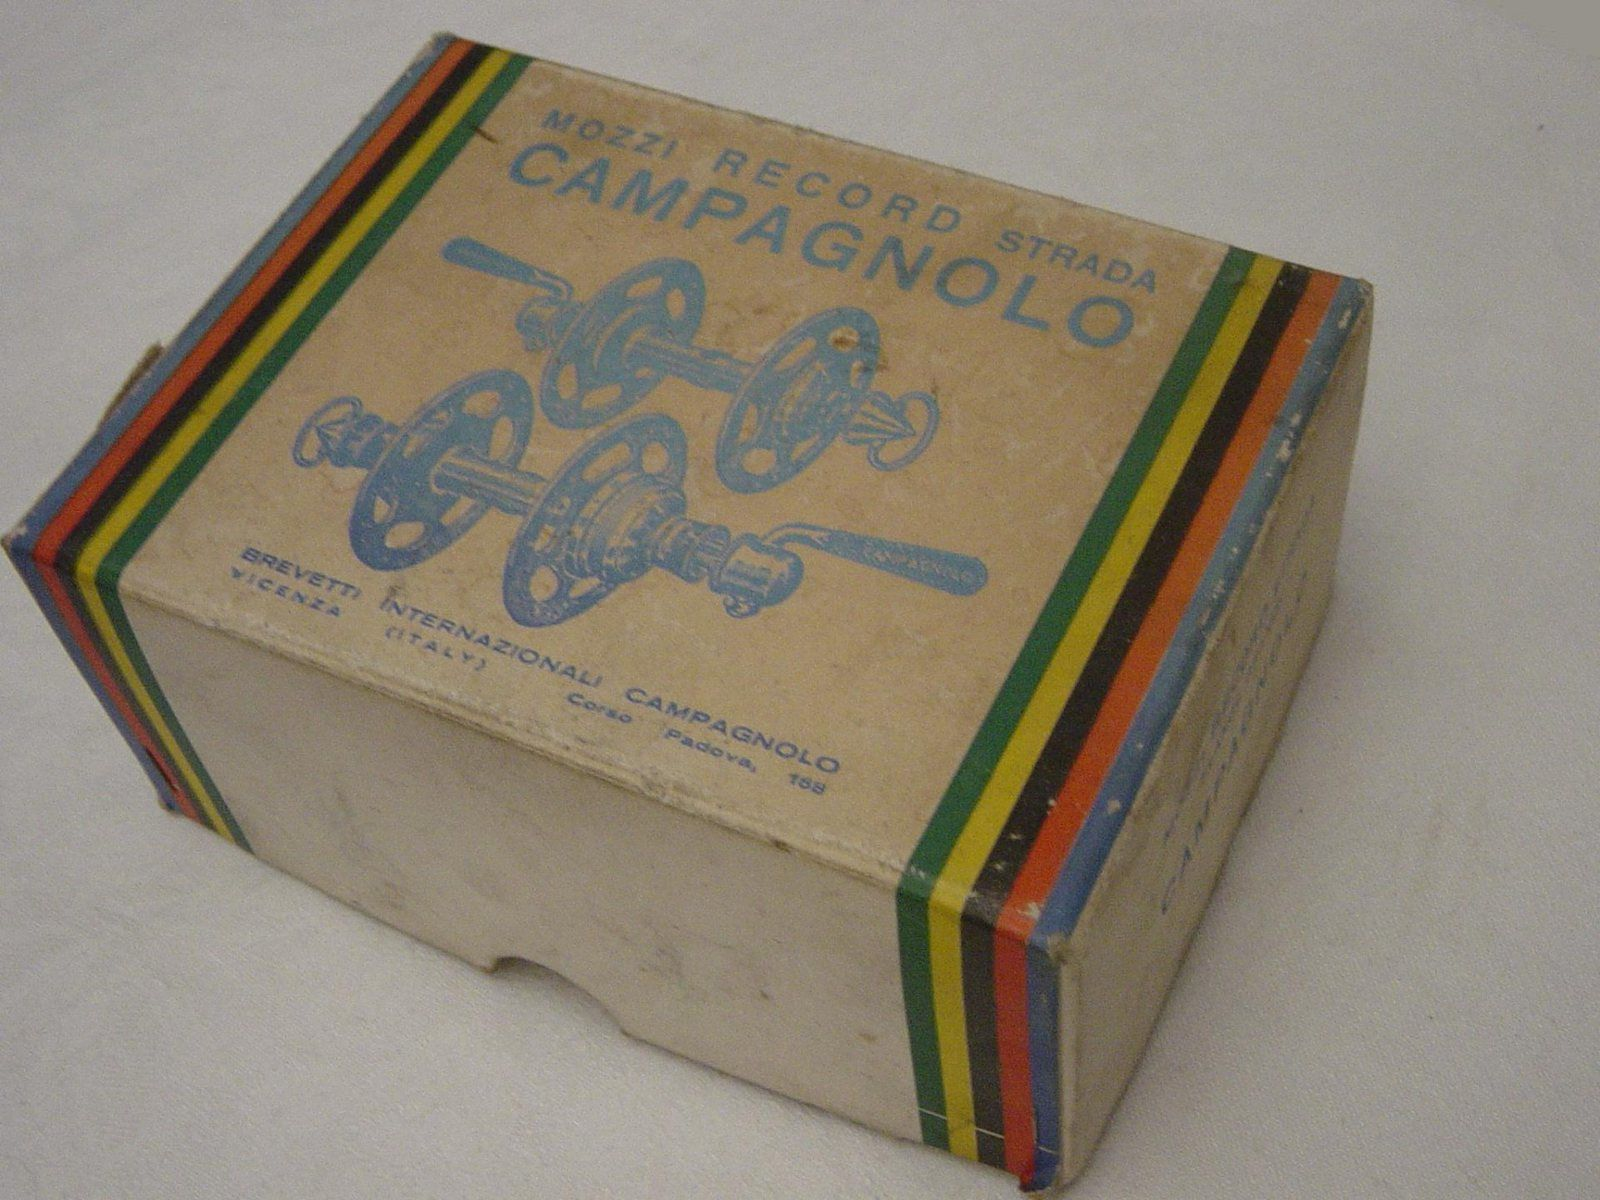 Campagnolo Record Grandes flasques